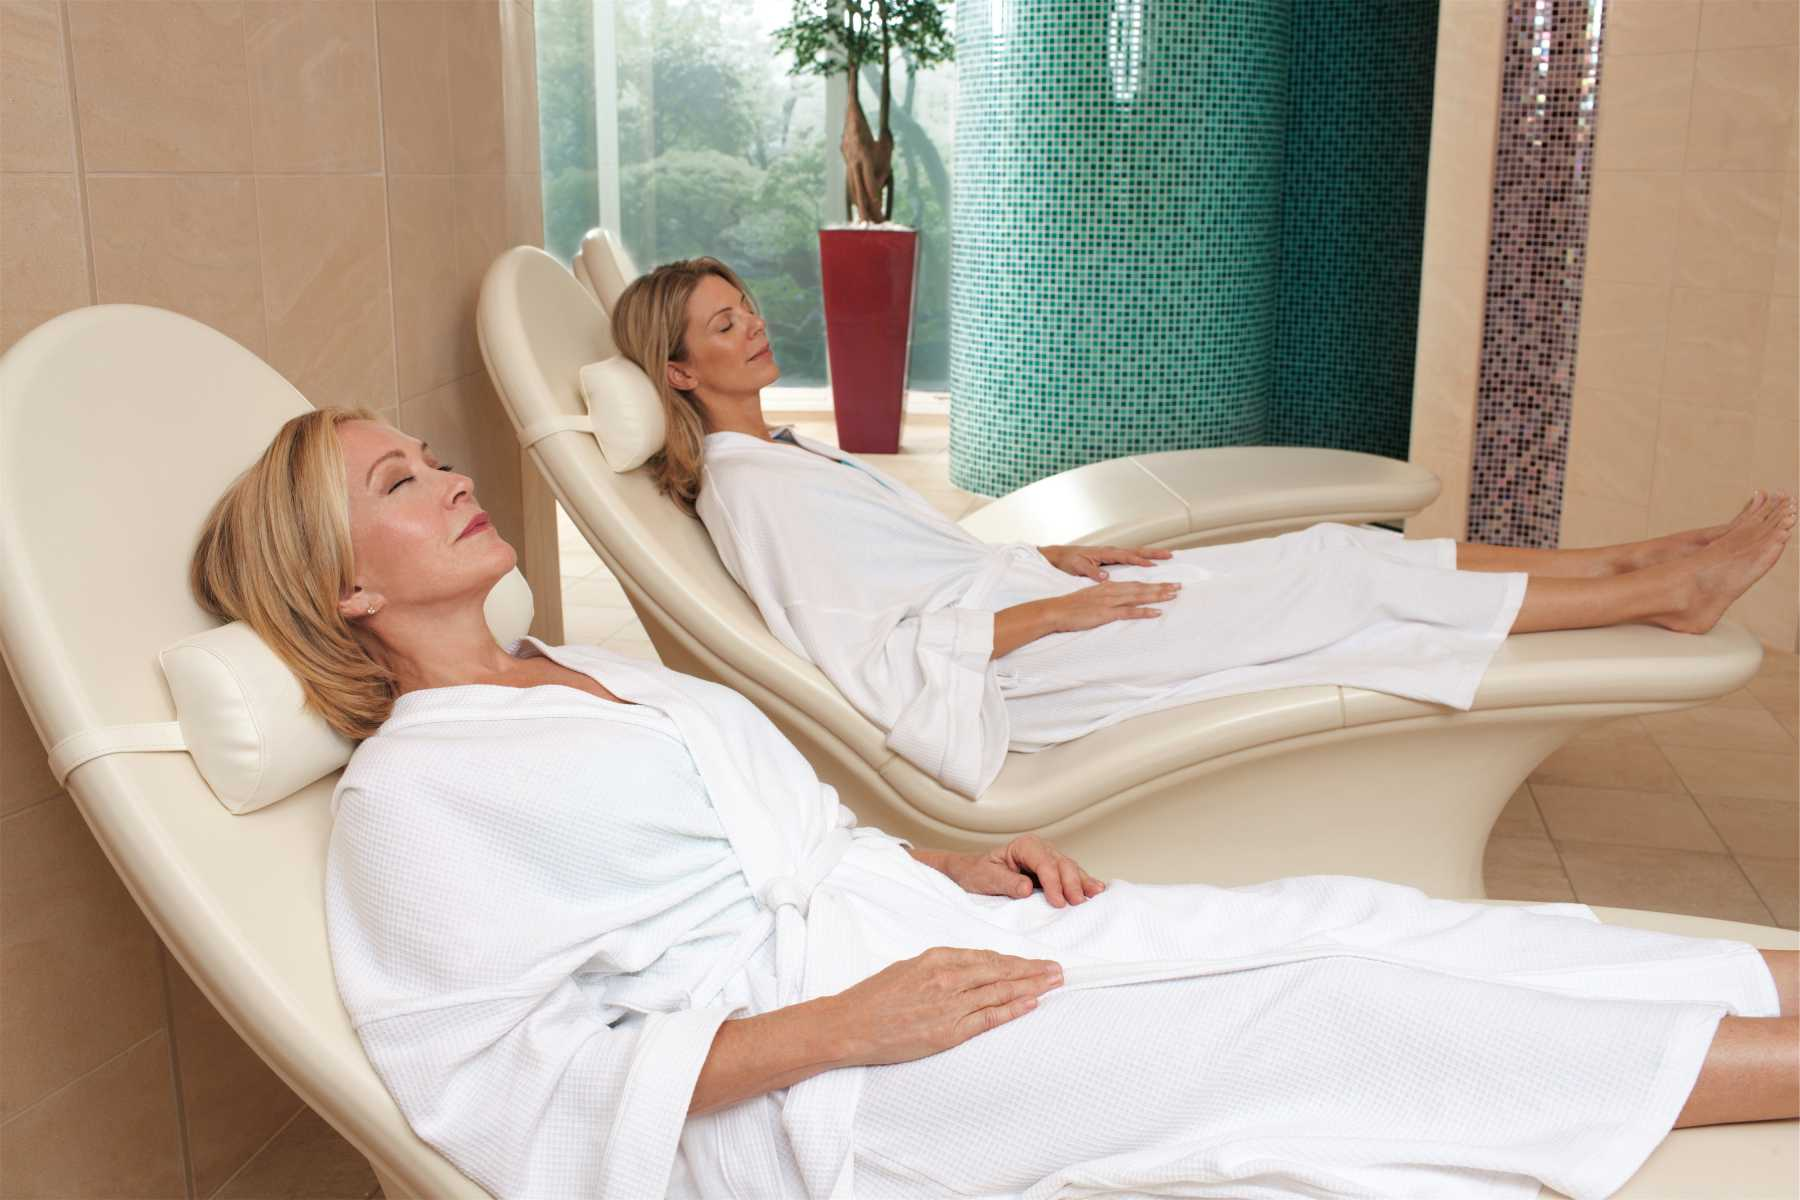 Royal Caribbean International Oasis of the Seas Interior Vitality Spa 3.jpg